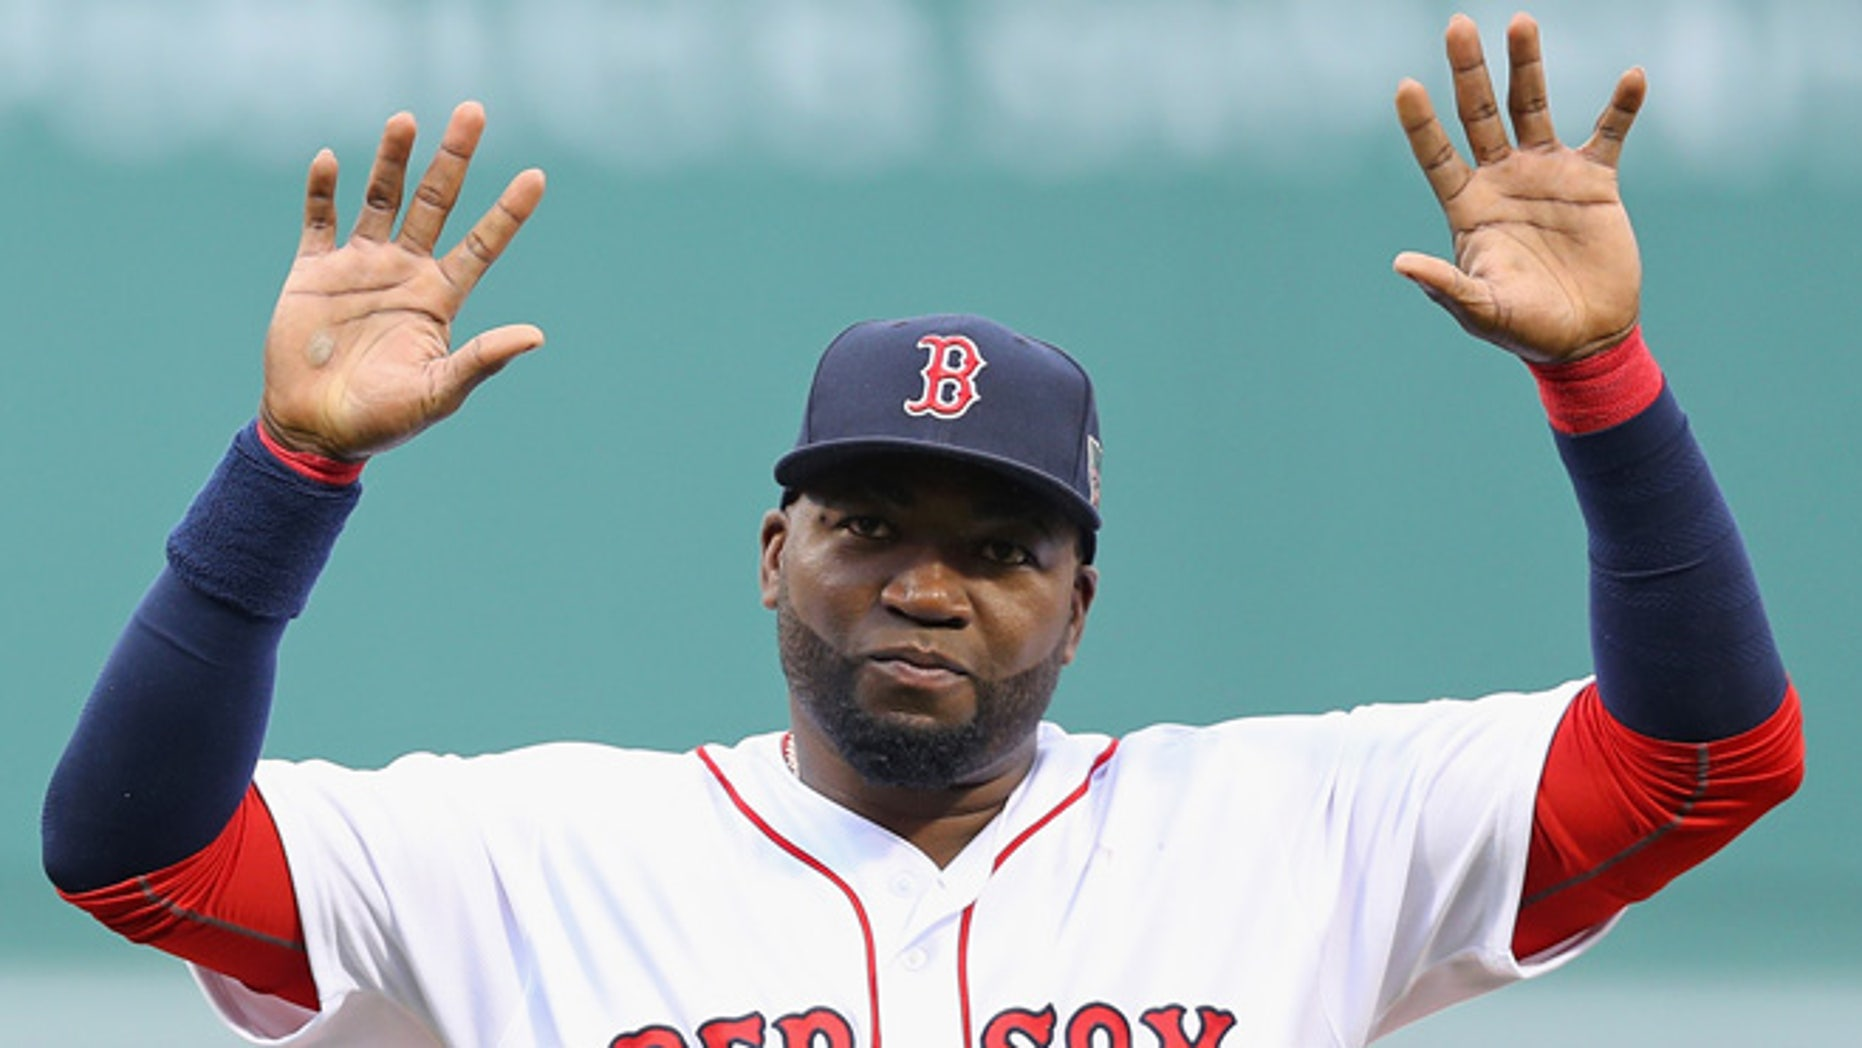 BOSTON, MA - OCTOBER 02:  David Ortiz #34 of the Boston Red Sox acknowledges the crowd during the pregame ceremony to honor his retirement before his last regular season home game at Fenway Park on October 2, 2016 in Boston, Massachusetts.  (Photo by Maddie Meyer/Getty Images)